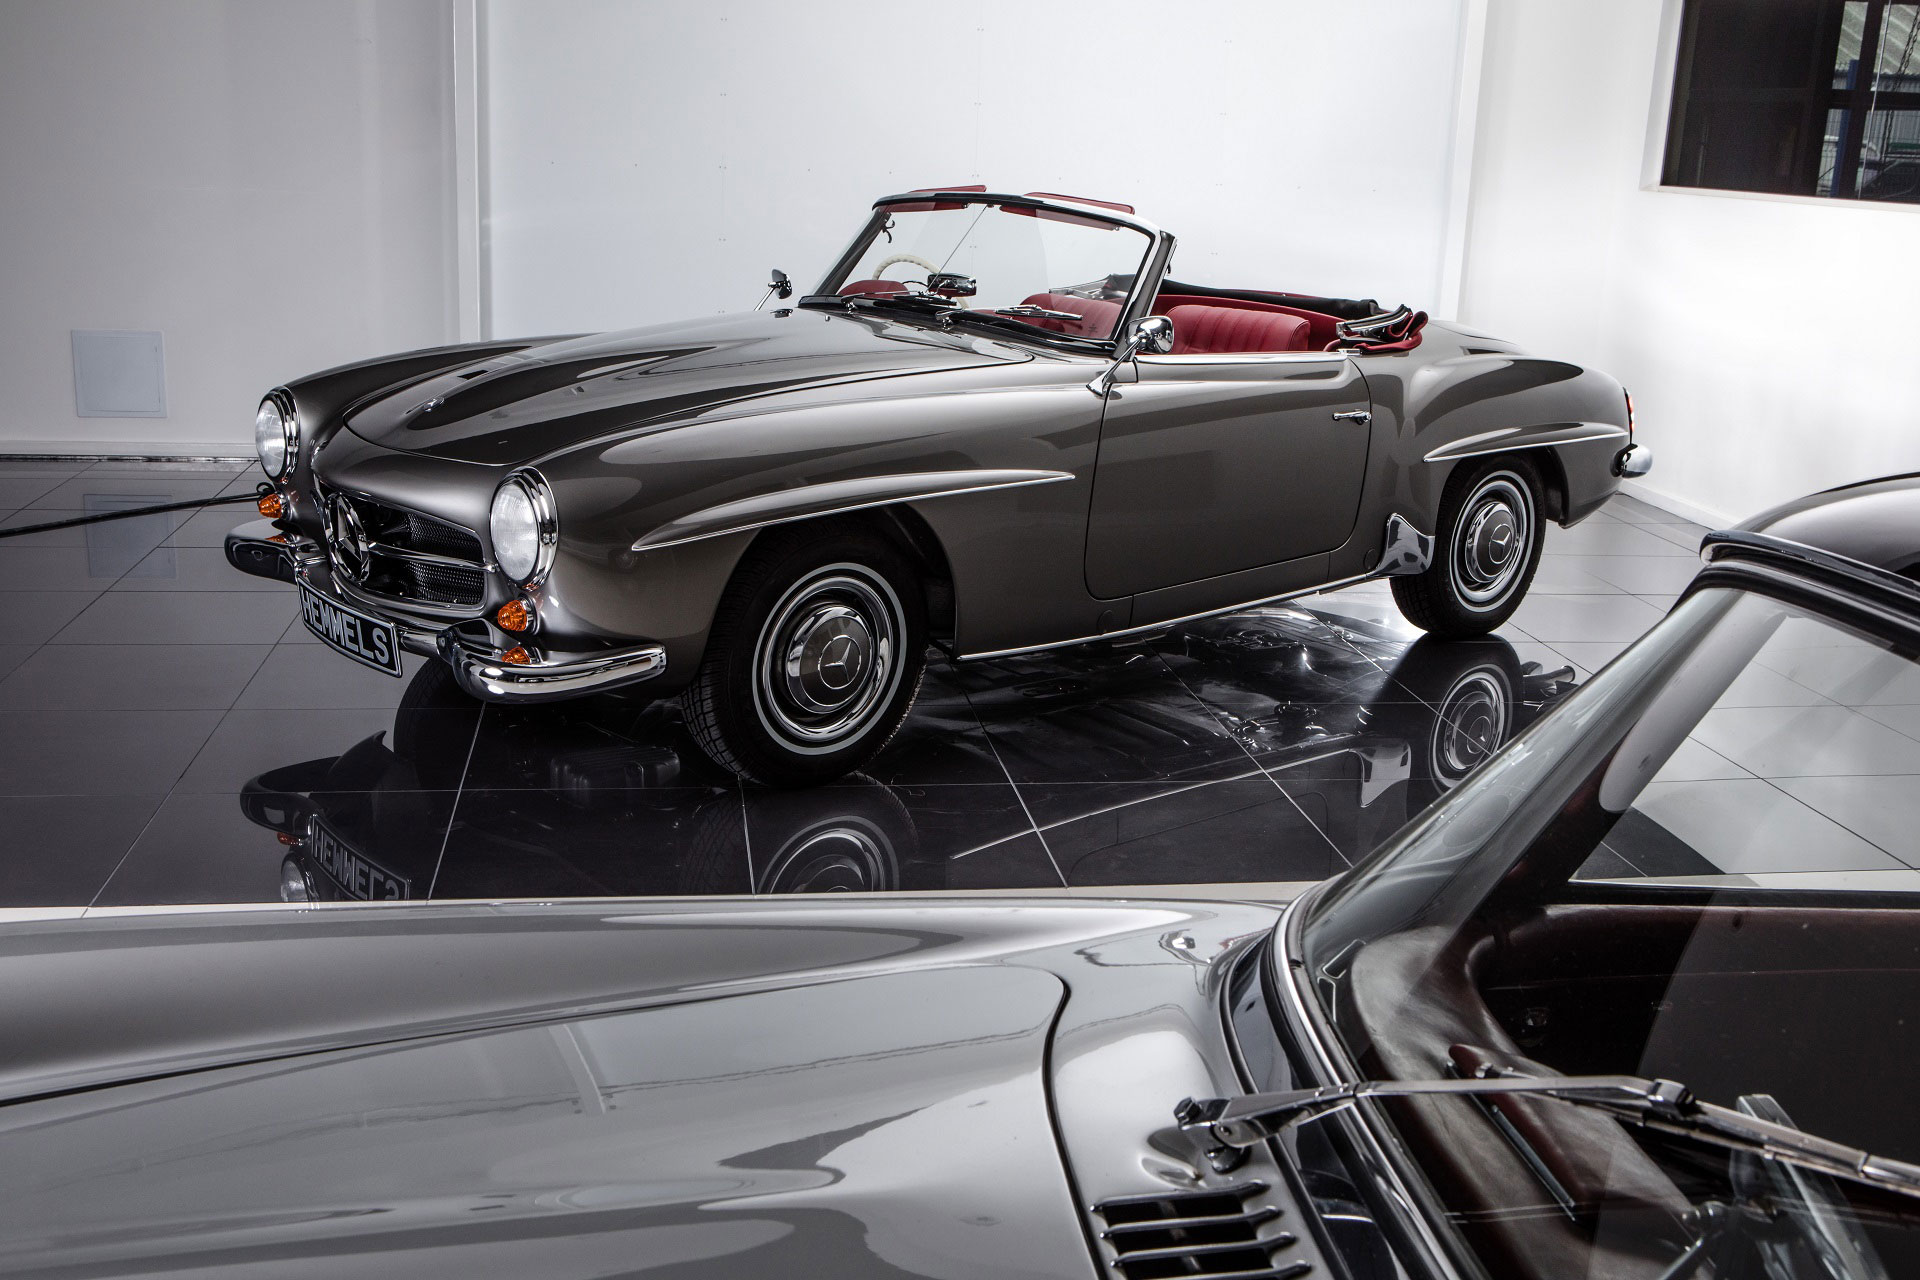 Classic 1963 Mercedes-Benz W121 190SL Roadster in Anthracite with red interior showroom with gullwing